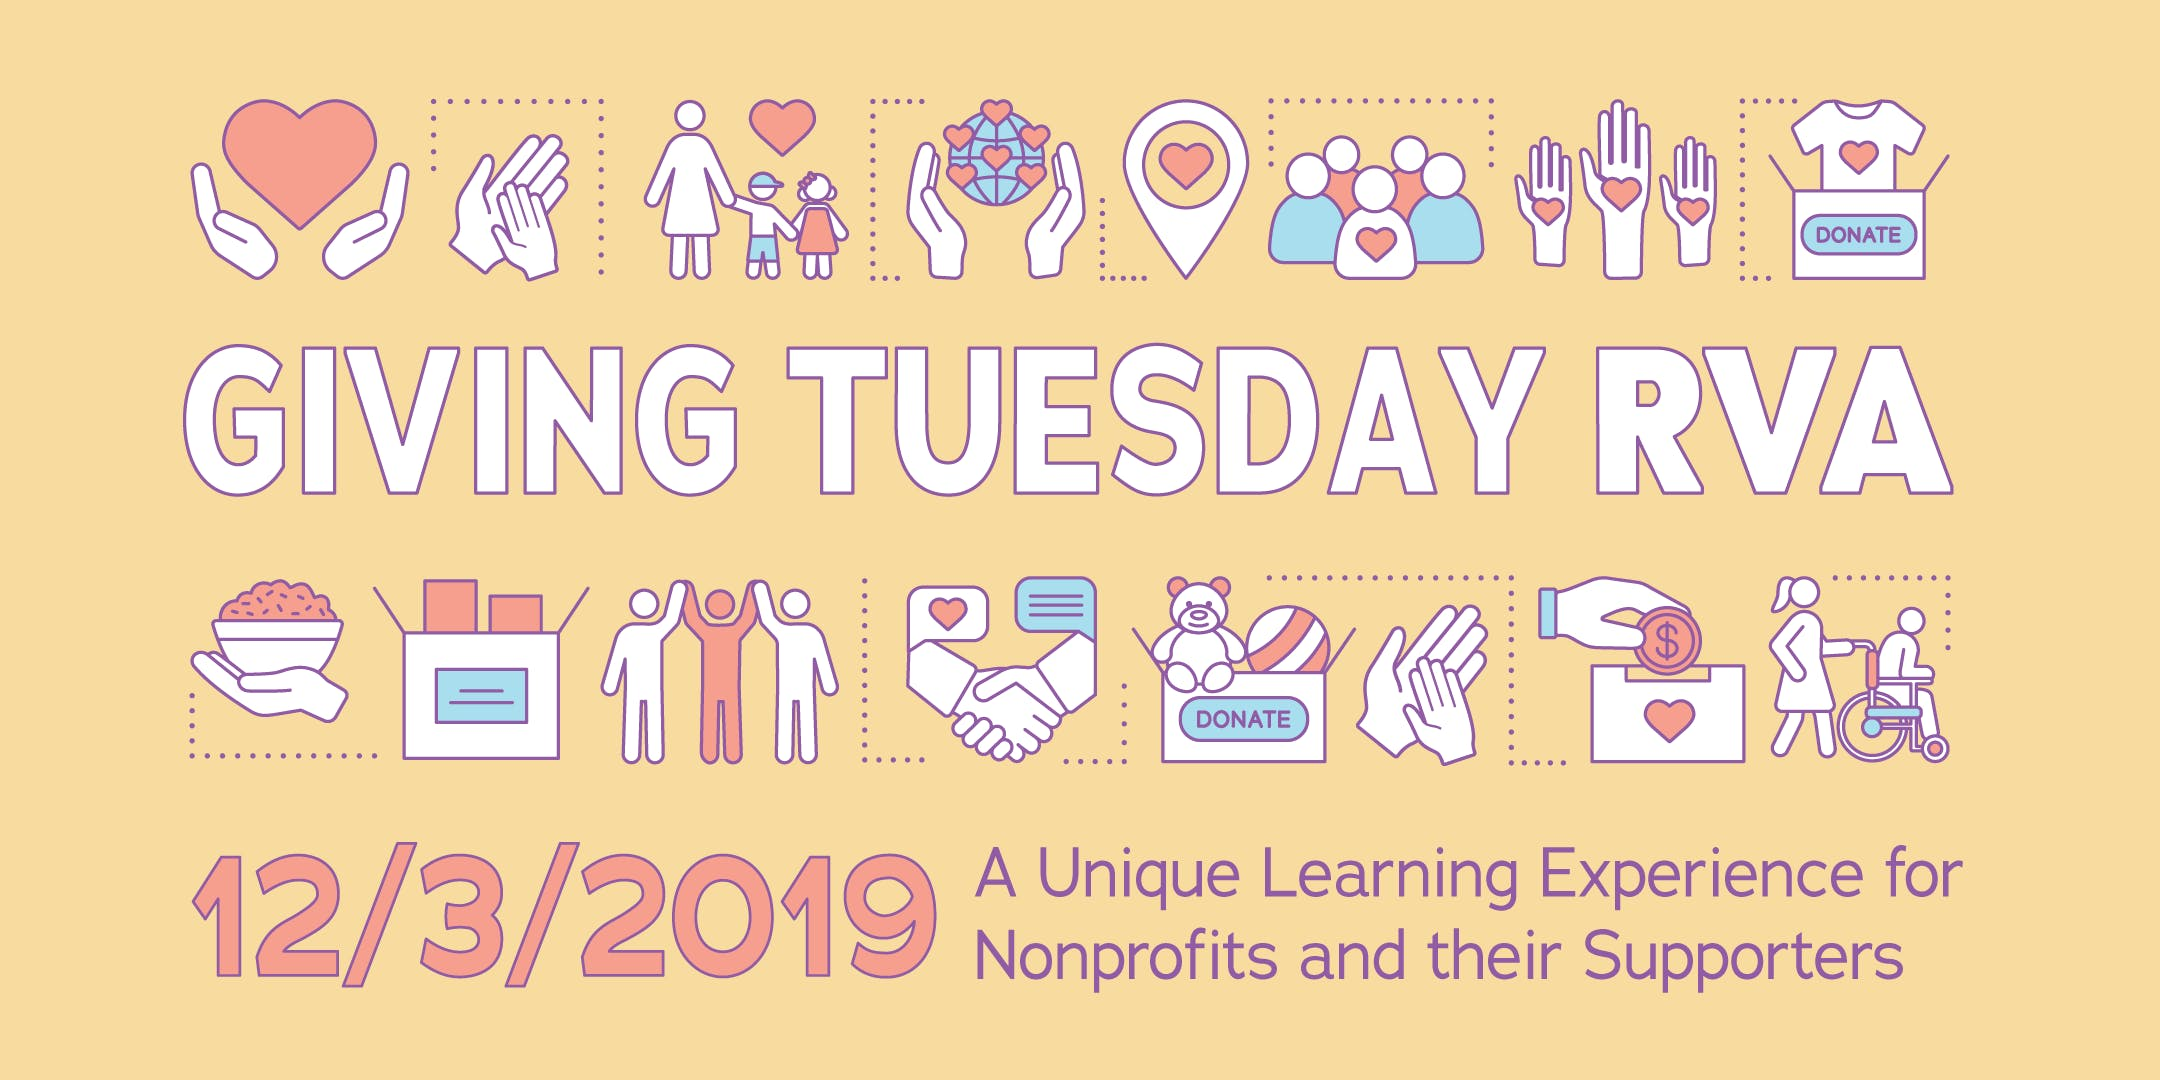 GivingTuesdayRVA - A Learning Experience for Nonprofits & their Supporters